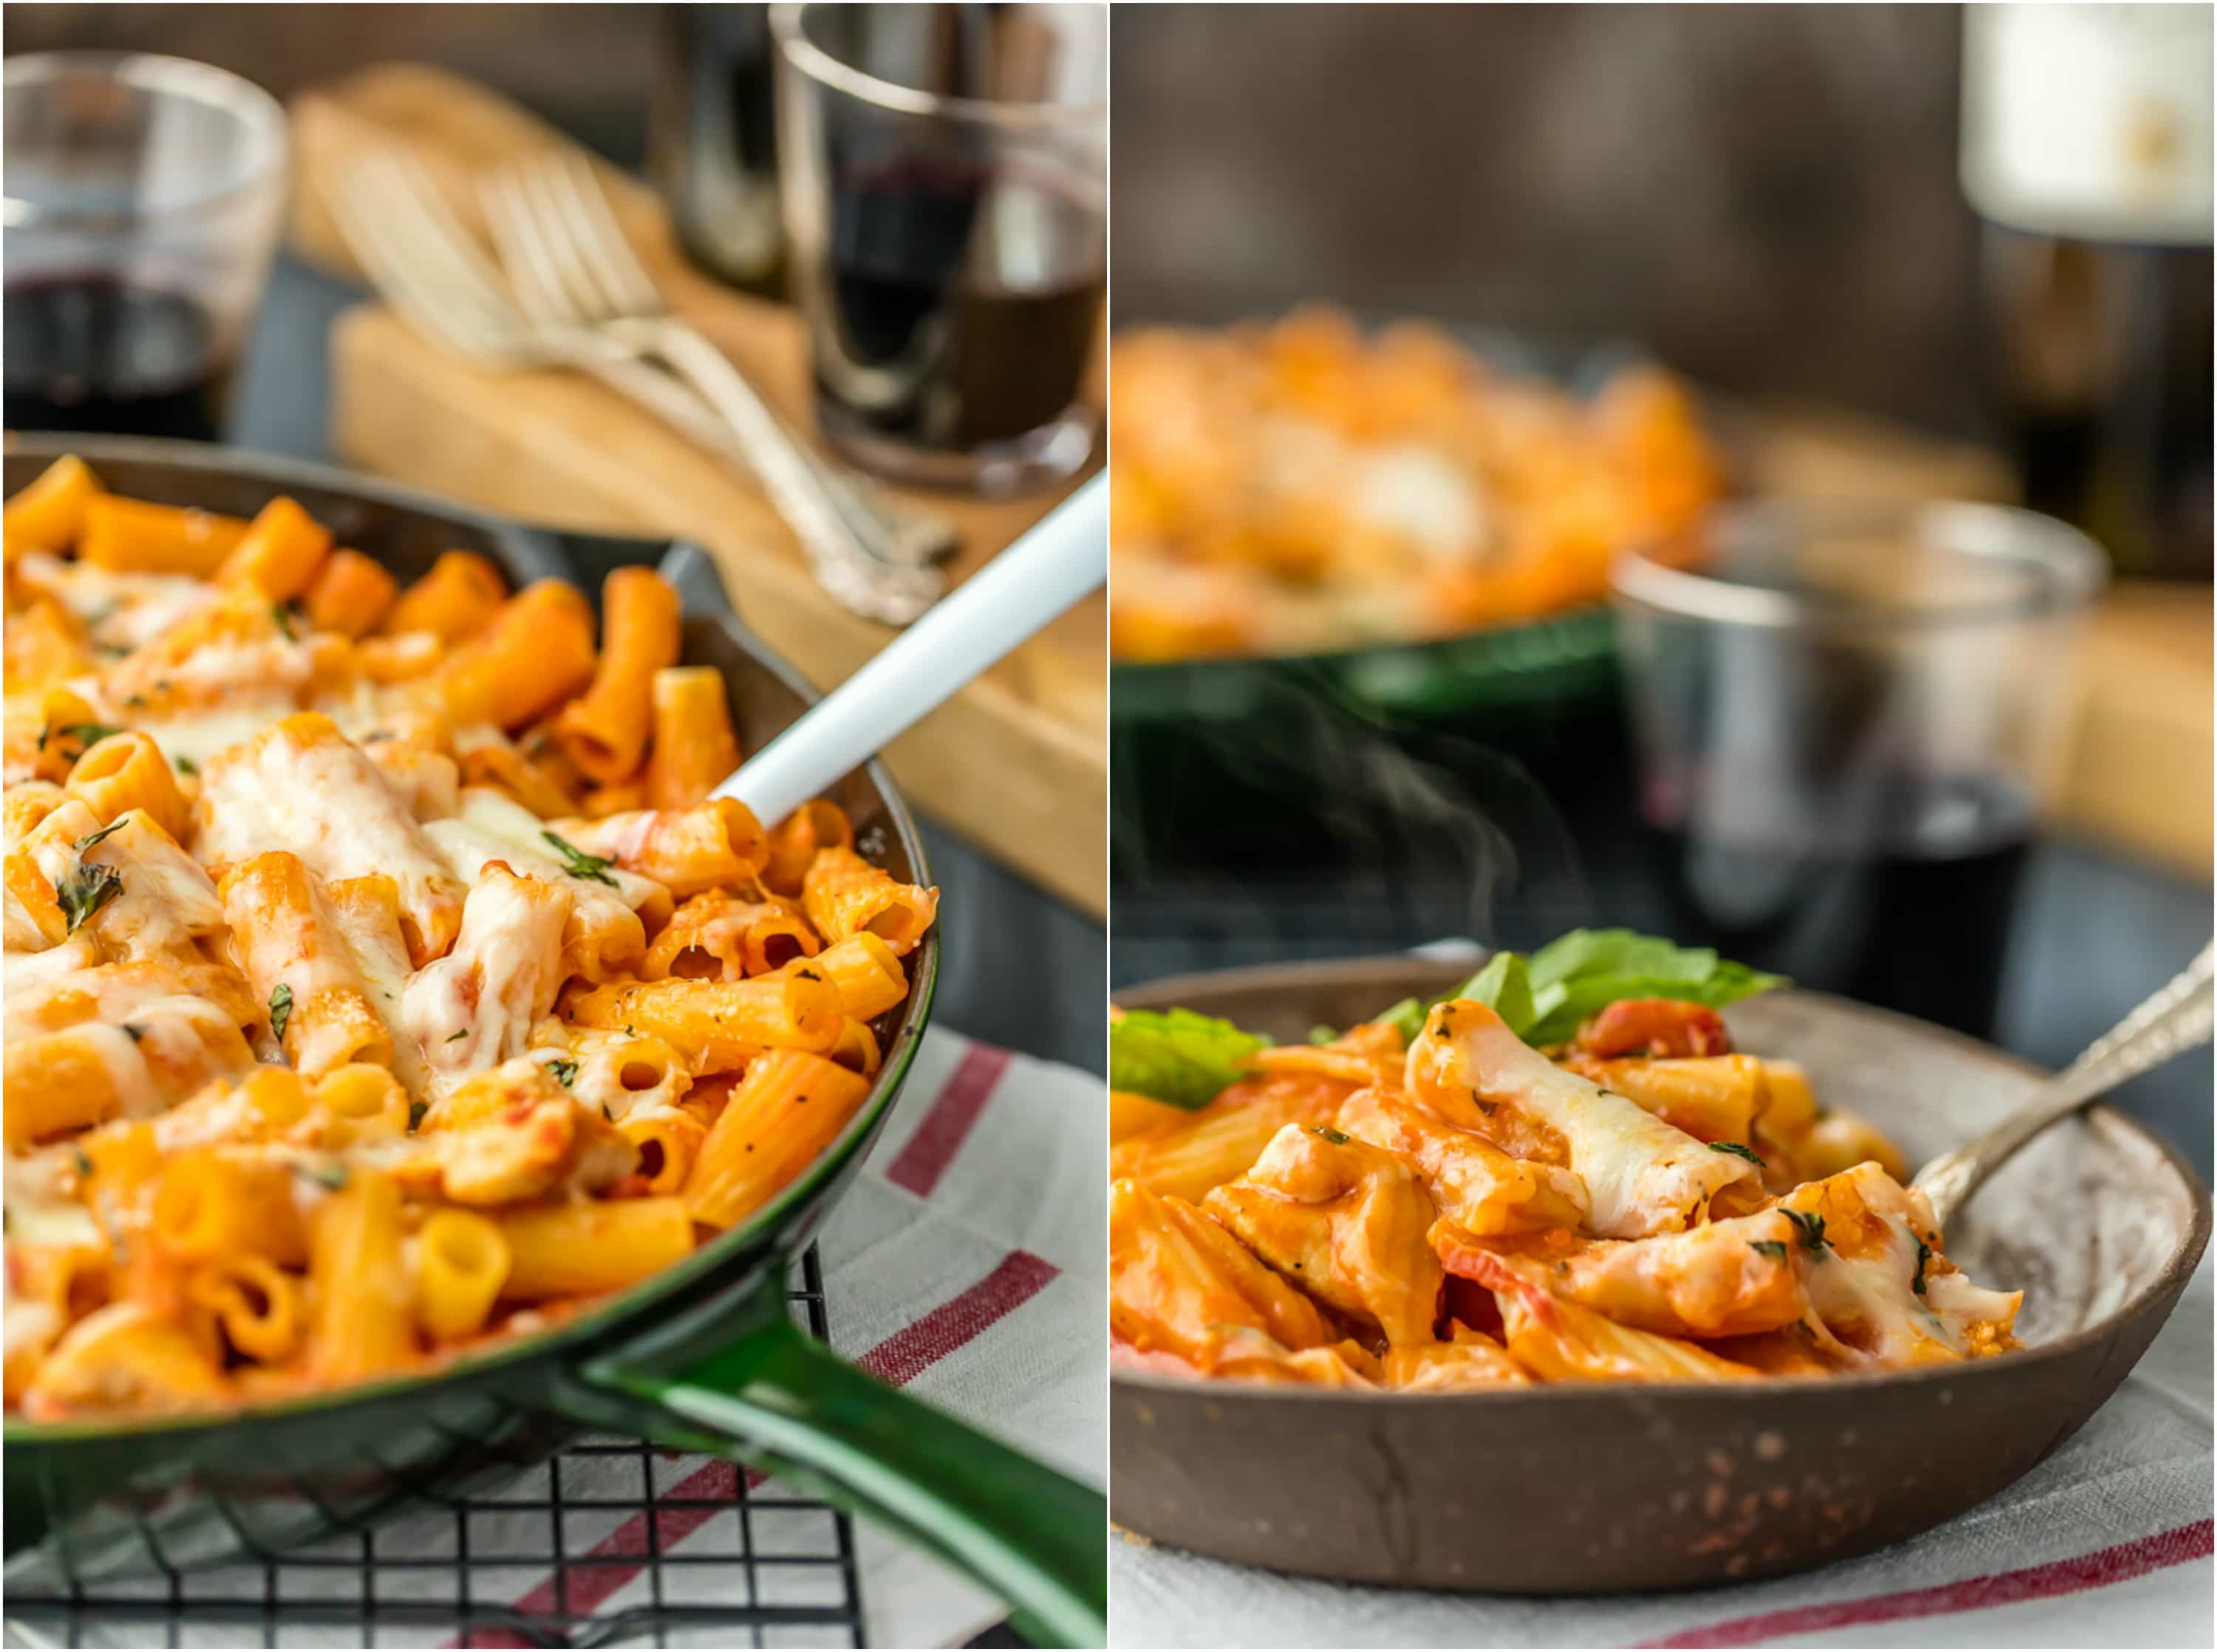 ONE PAN Chicken Parmesan Pasta Skillet, with only 6 ingredients! This is our go-to easy recipe anytime we are craving comfort food. Delicious one pot pasta everyone will love!